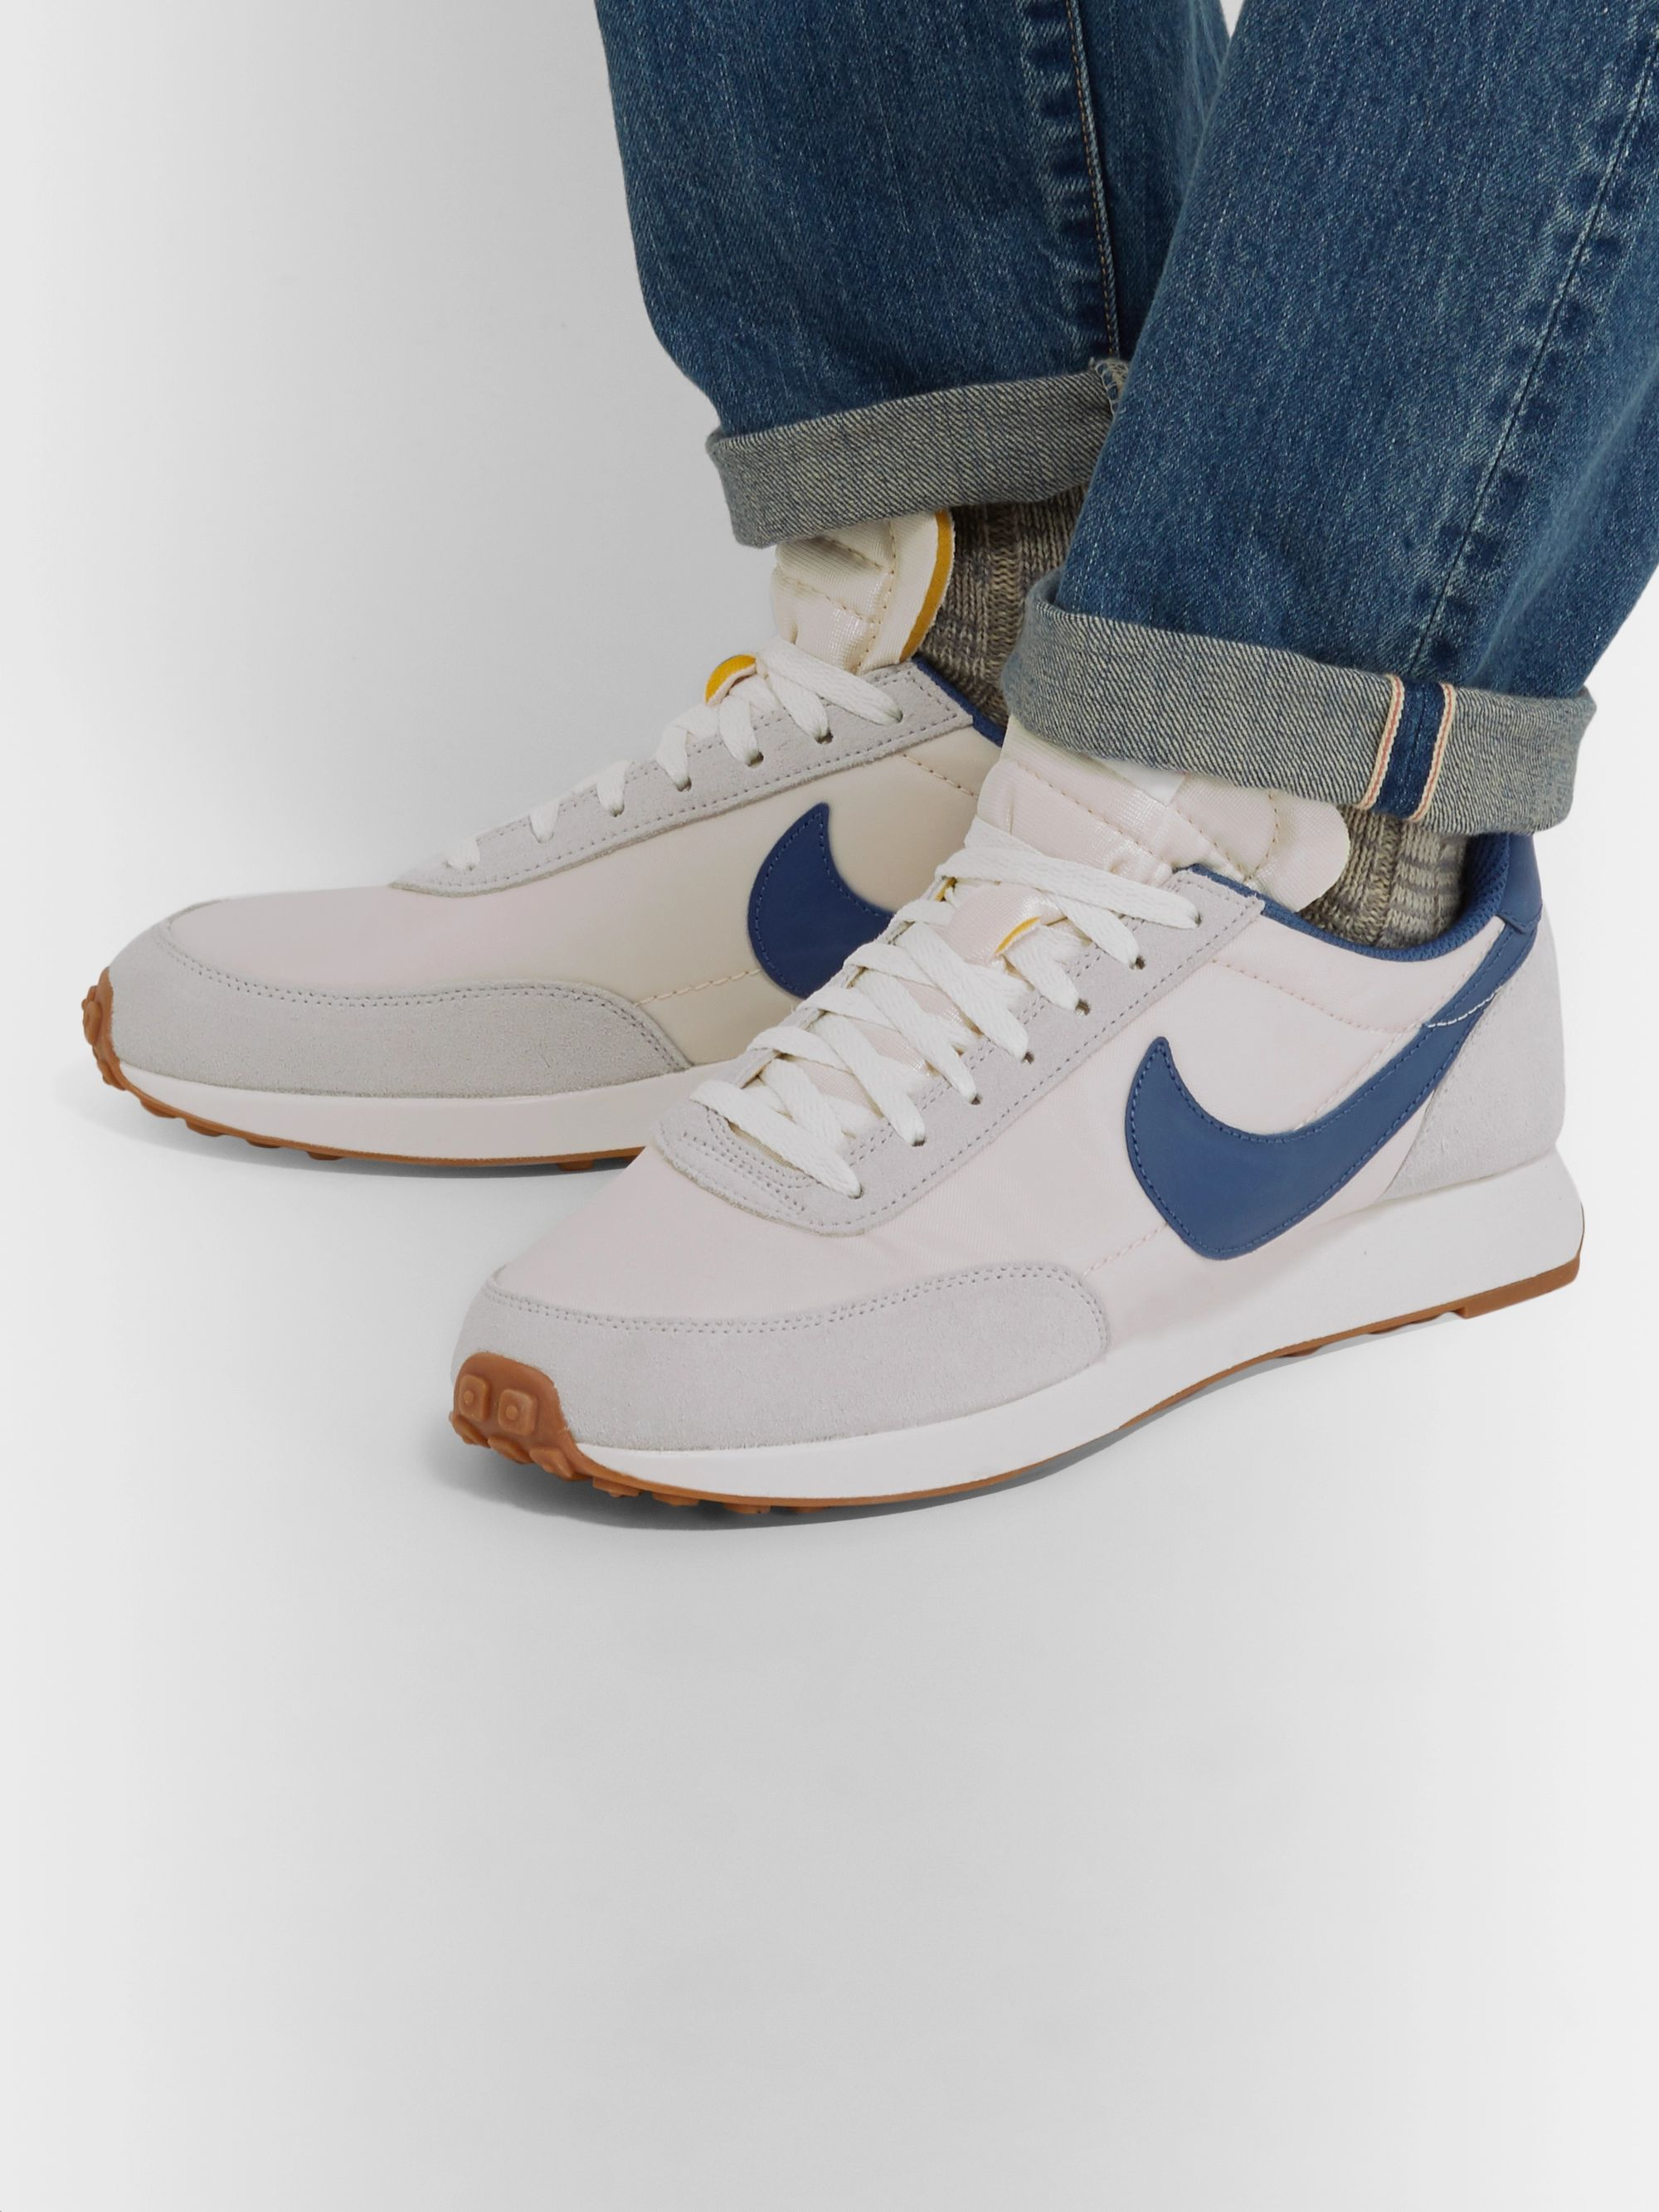 Air Tailwind 79 Shell, Suede and Leather Sneakers